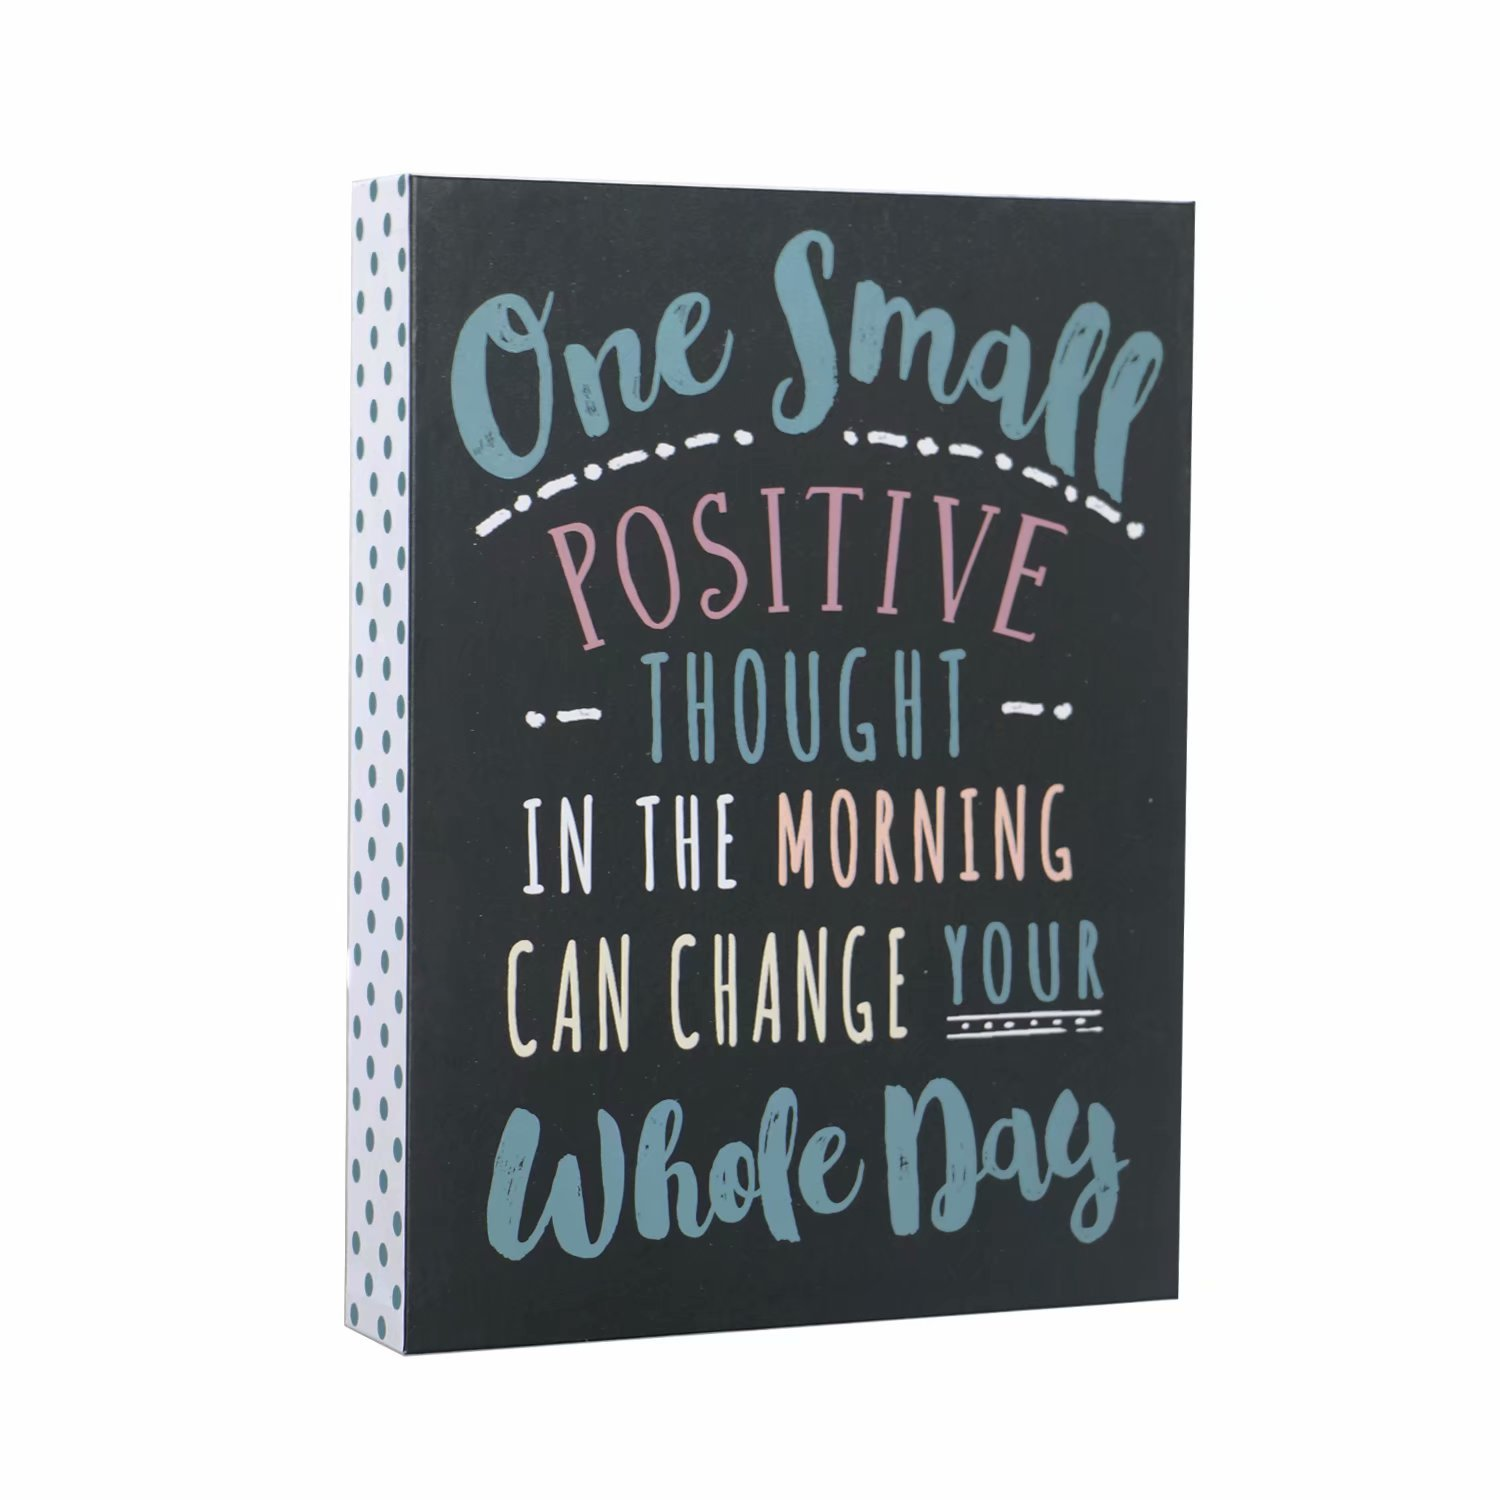 Check Out Positive QuotesProducts On Amazon!